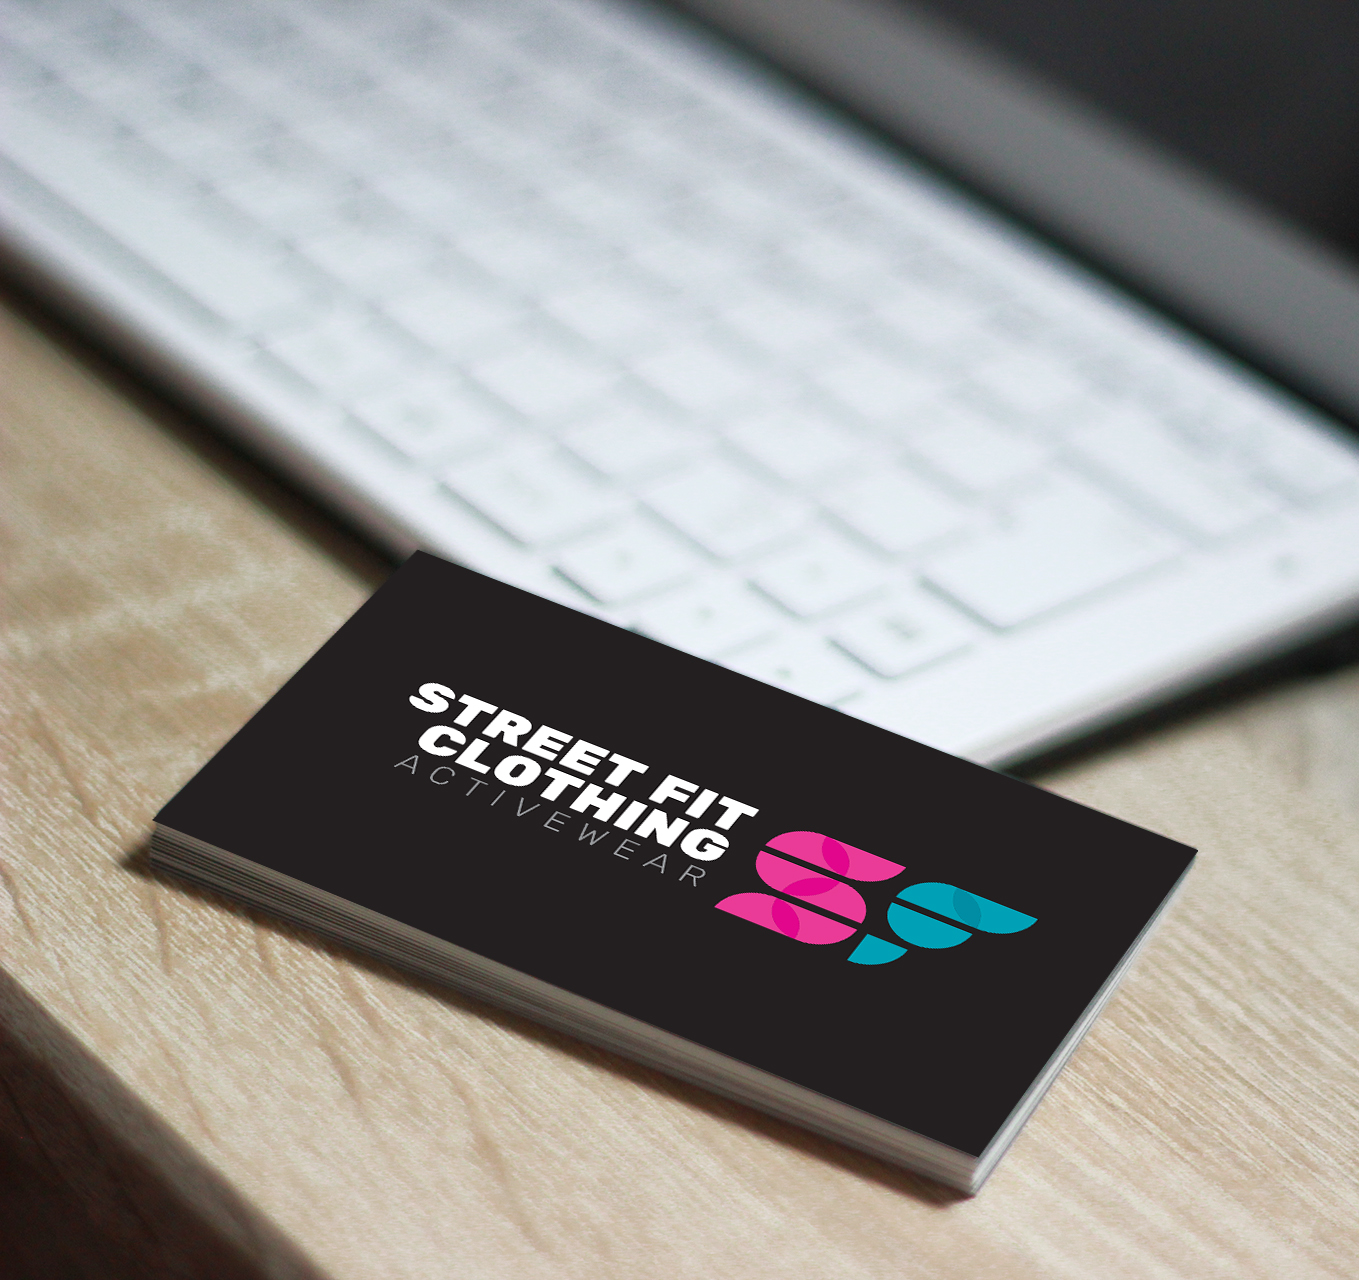 Street Fit Clothing business card